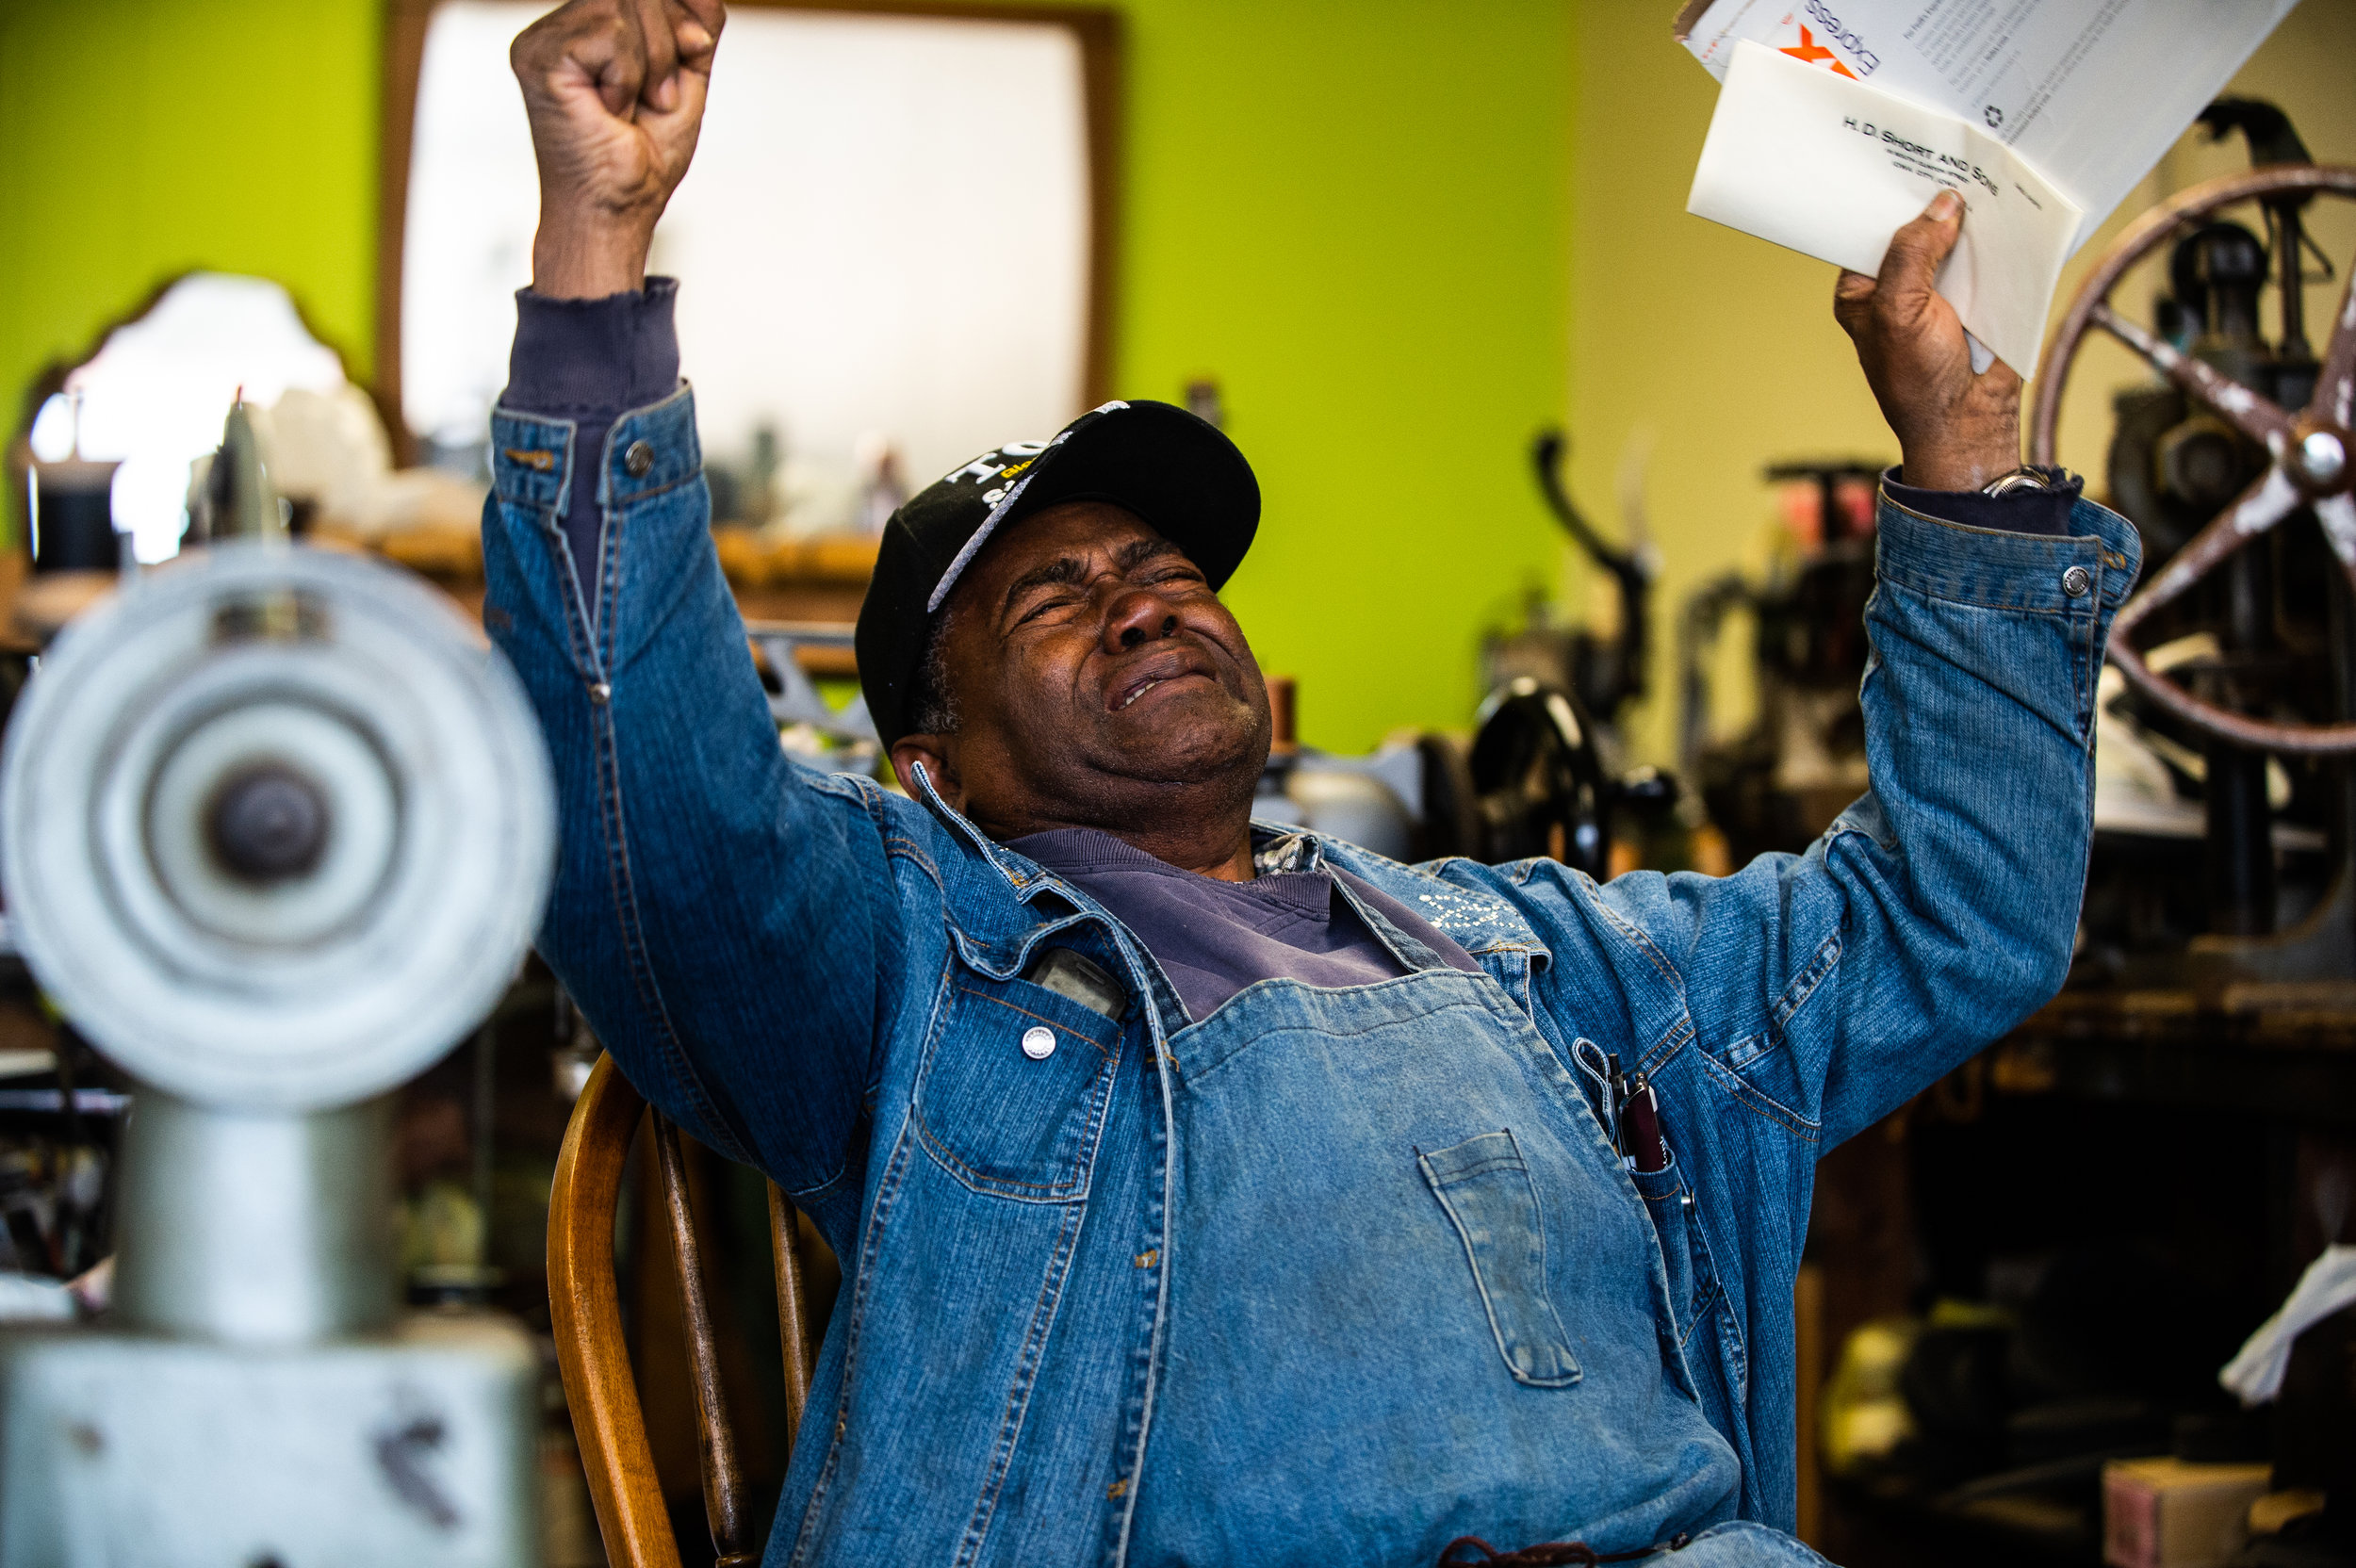 Jim Blackburn, 82, of Decatur Shoe Repair reacts December 6, 2018 at his Fourth Avenue Southeast business after receiving a check for $5,000 to replace machinery that was stolen from him in Decatur, Ala.